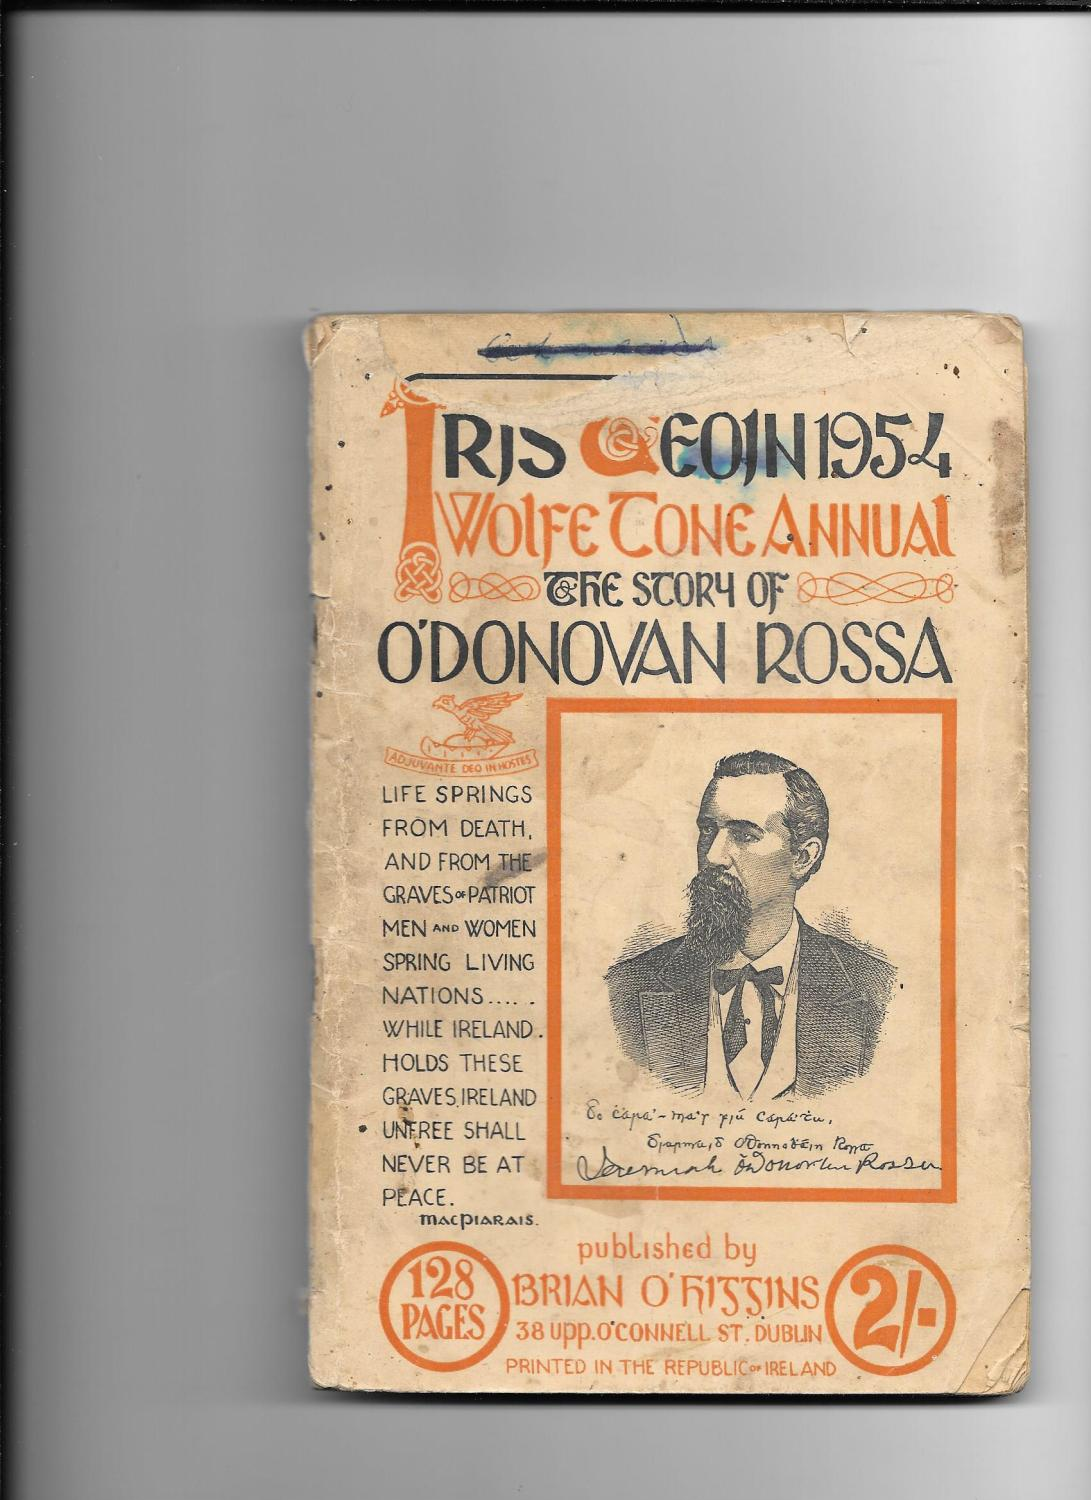 Wolfe Tone Annual, 1954. Iris Teoin 1954. The Story Of O'donovan Rossa. Softcover